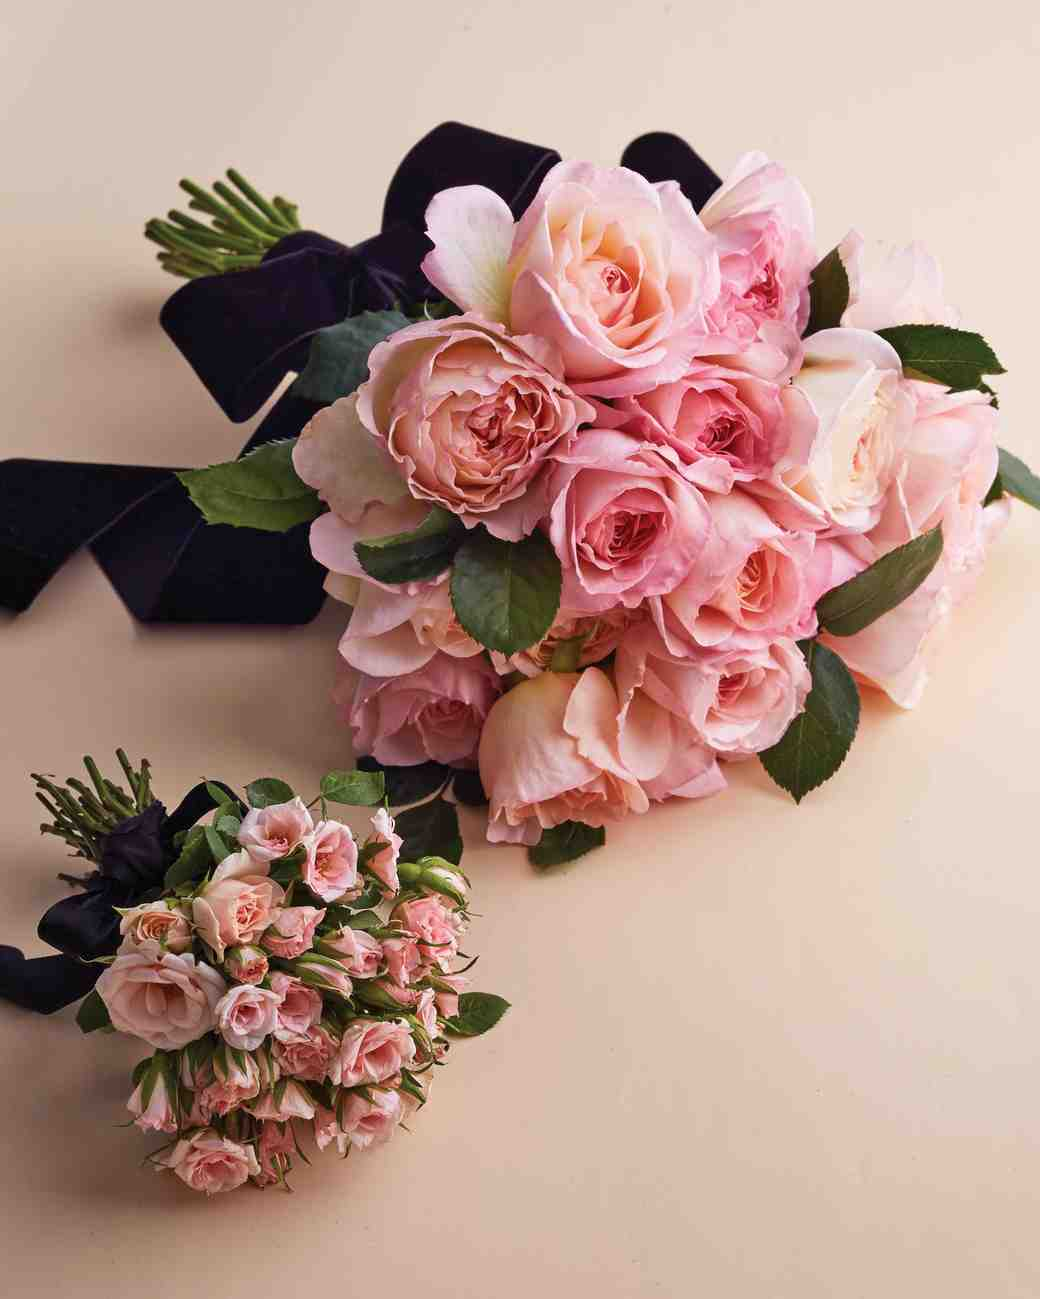 Wedding Flower Bouquet Designs: Pretty In Pink Wedding Bouquet Ideas